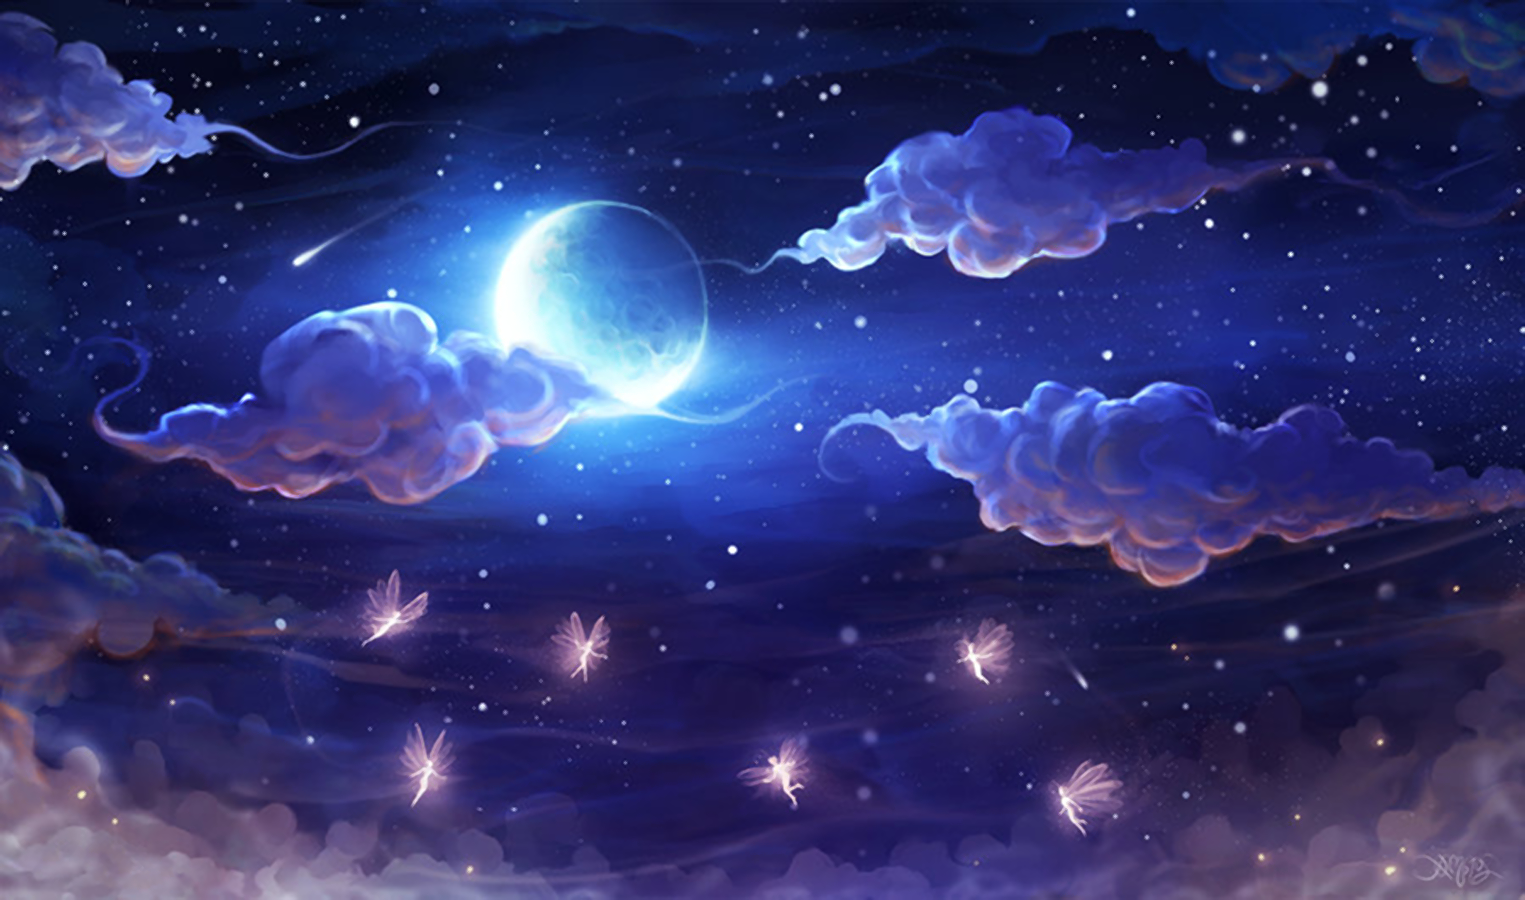 HD Wallpaper | Background Image ID:686354 - Starry Sky Background PNG